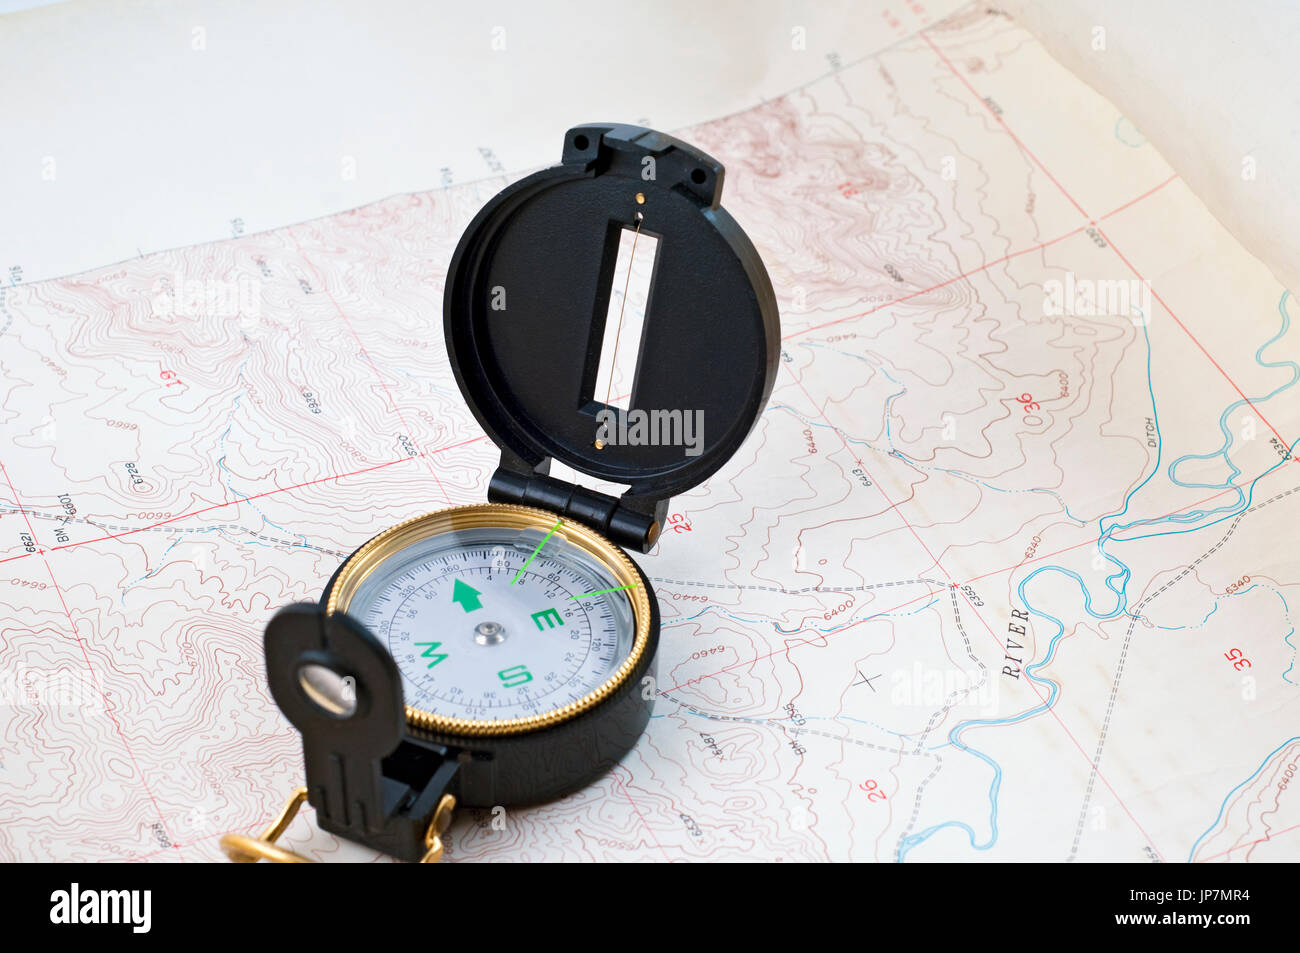 Compass sitting on a topo map. - Stock Image